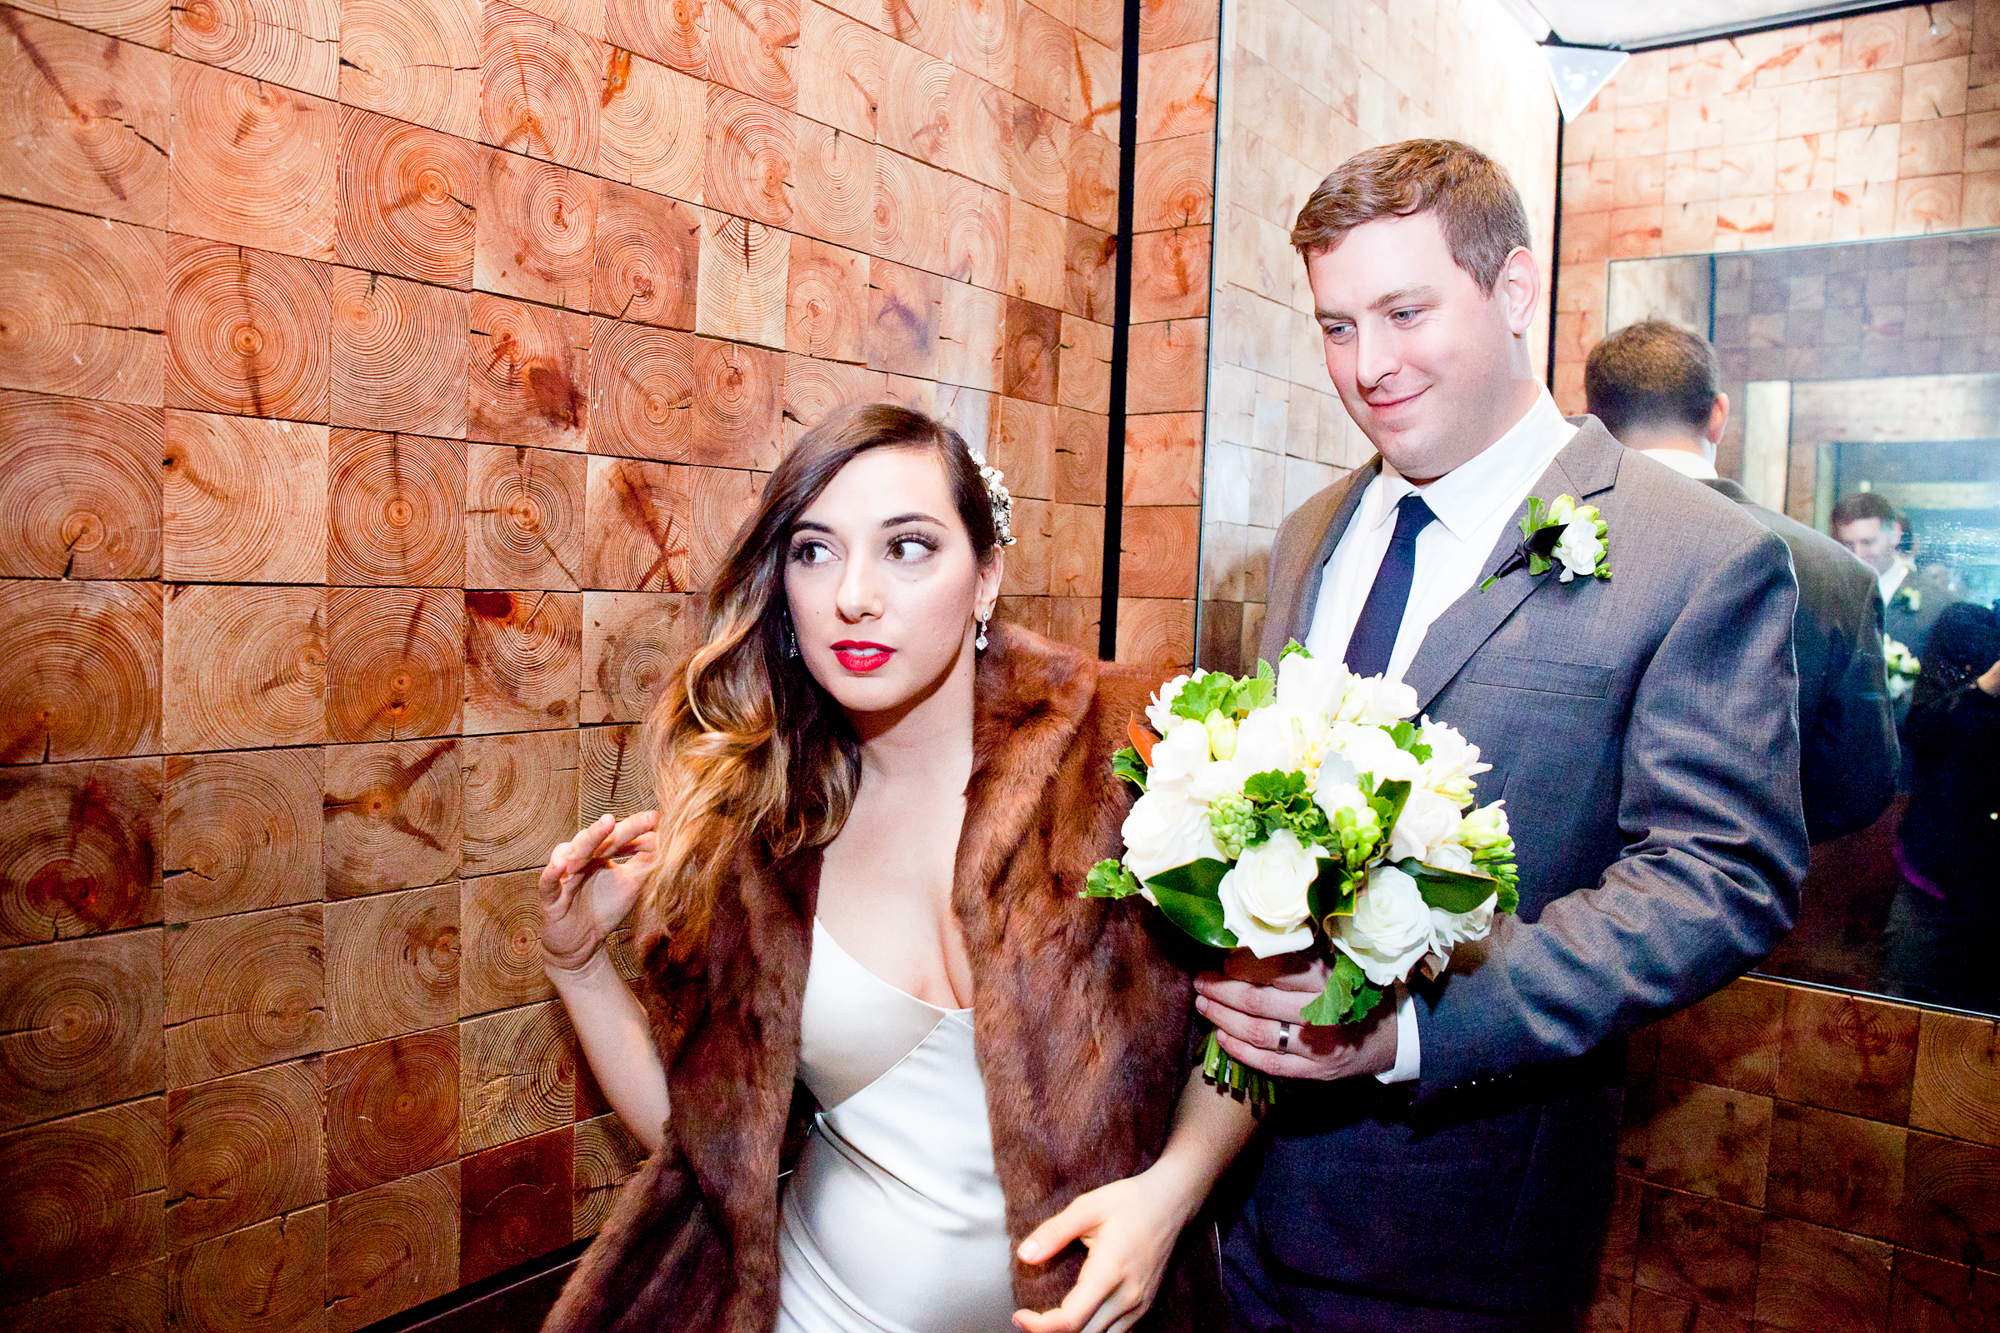 013_CarlyGaebe_SteadfastStudio_WeddingPhotography_NewYorkCity_Brooklyn_WytheHotel_Retro_Bouquet.jpg